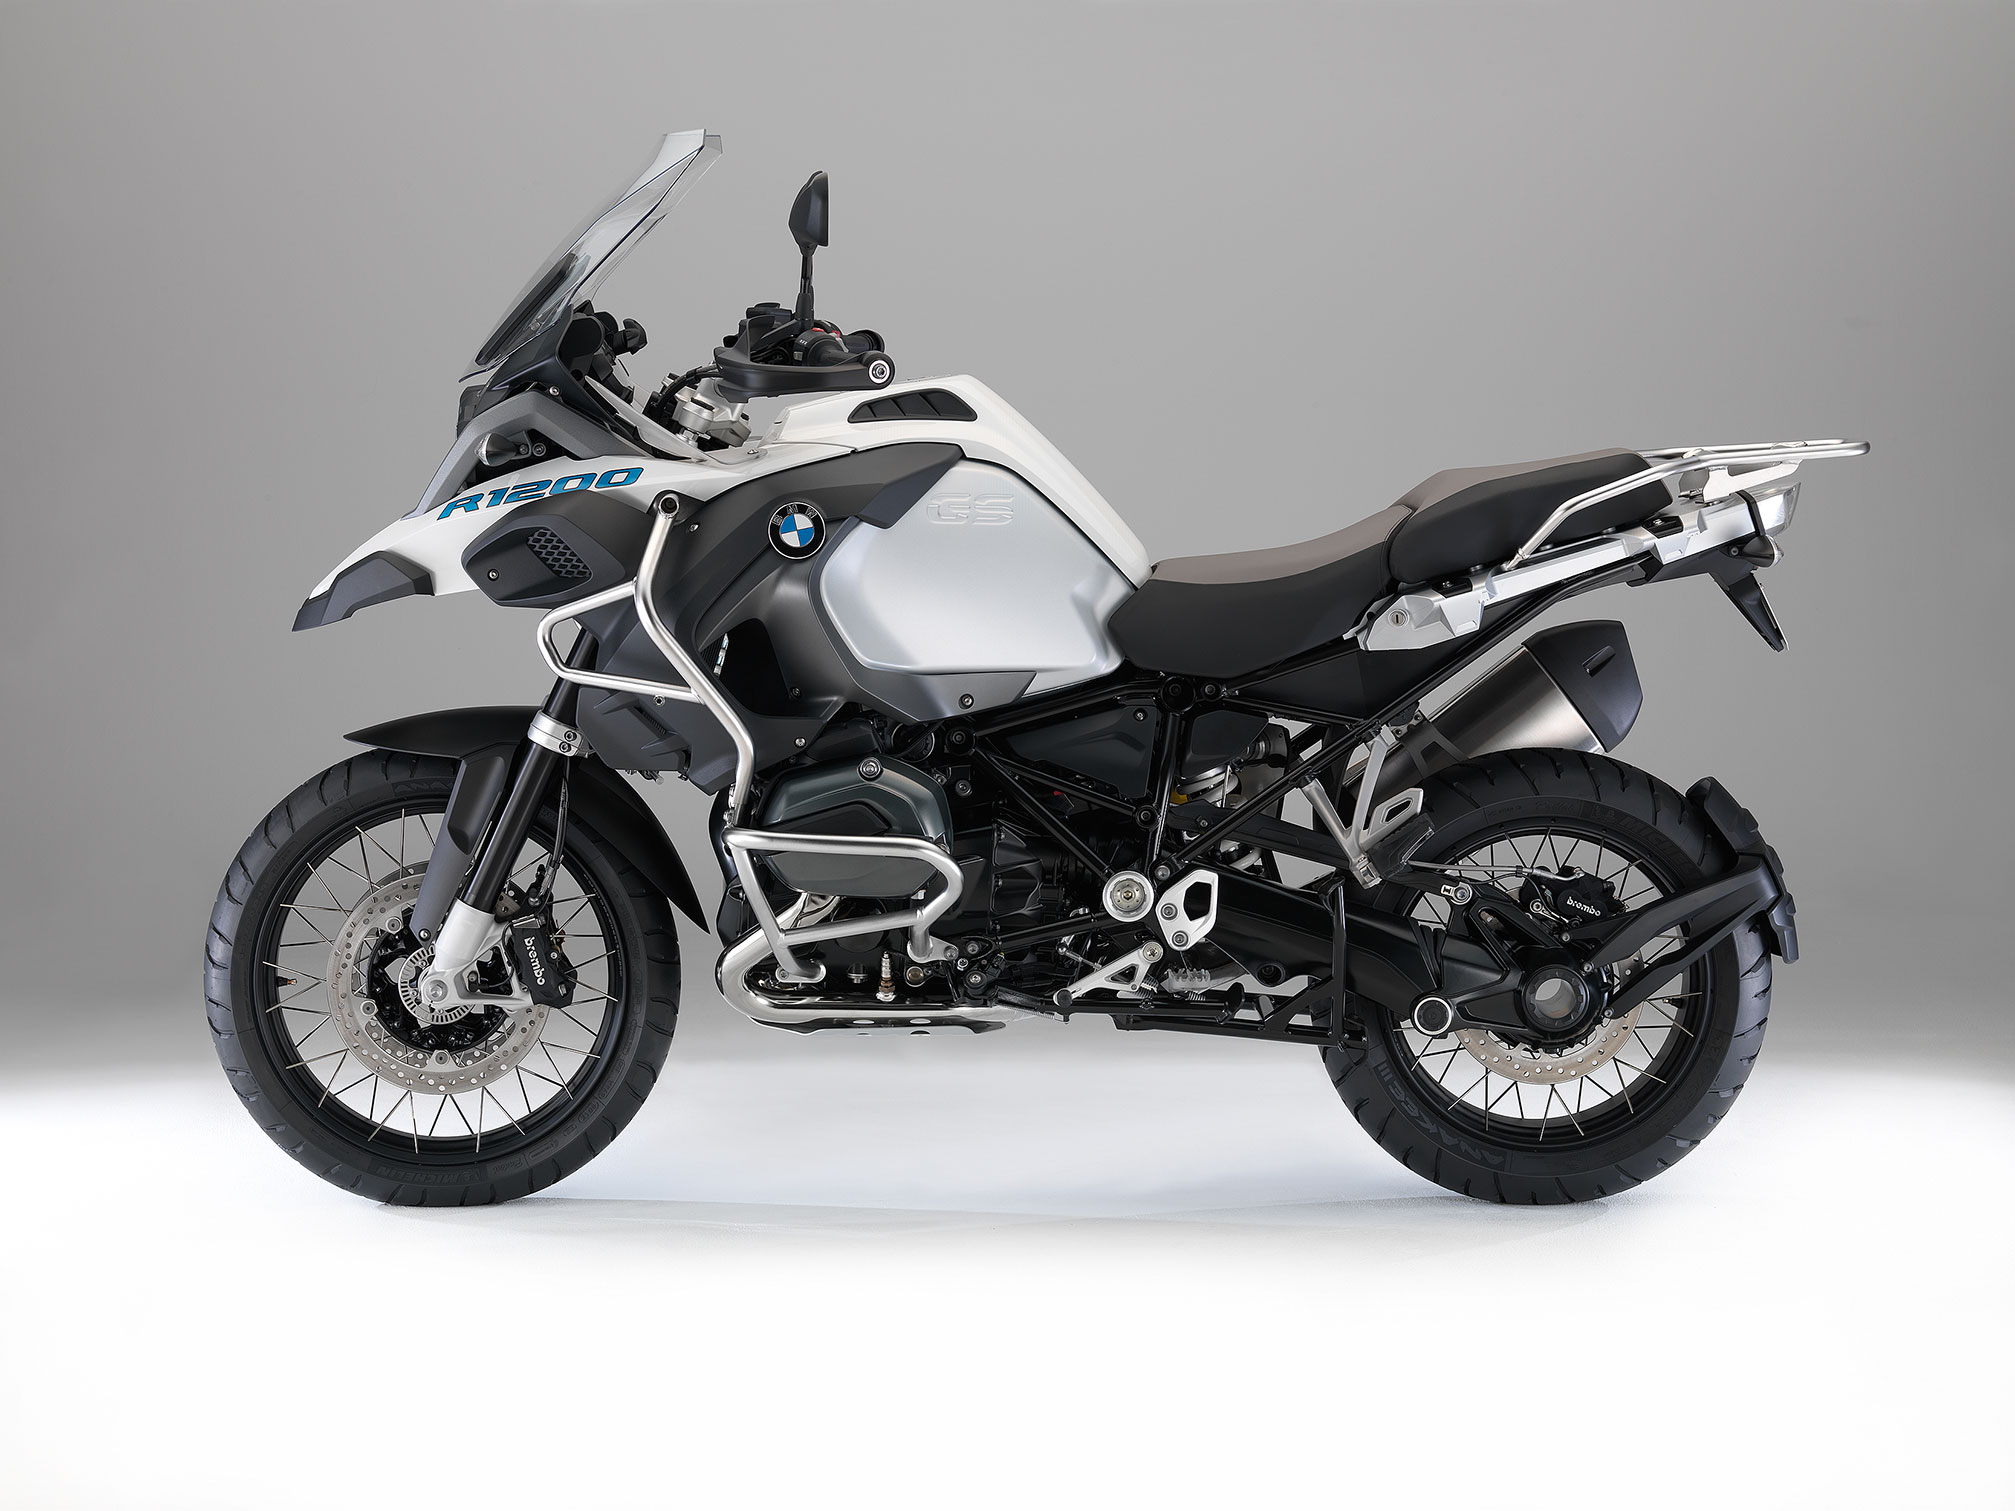 BMW R1200GS Adventure 2015 images #78350